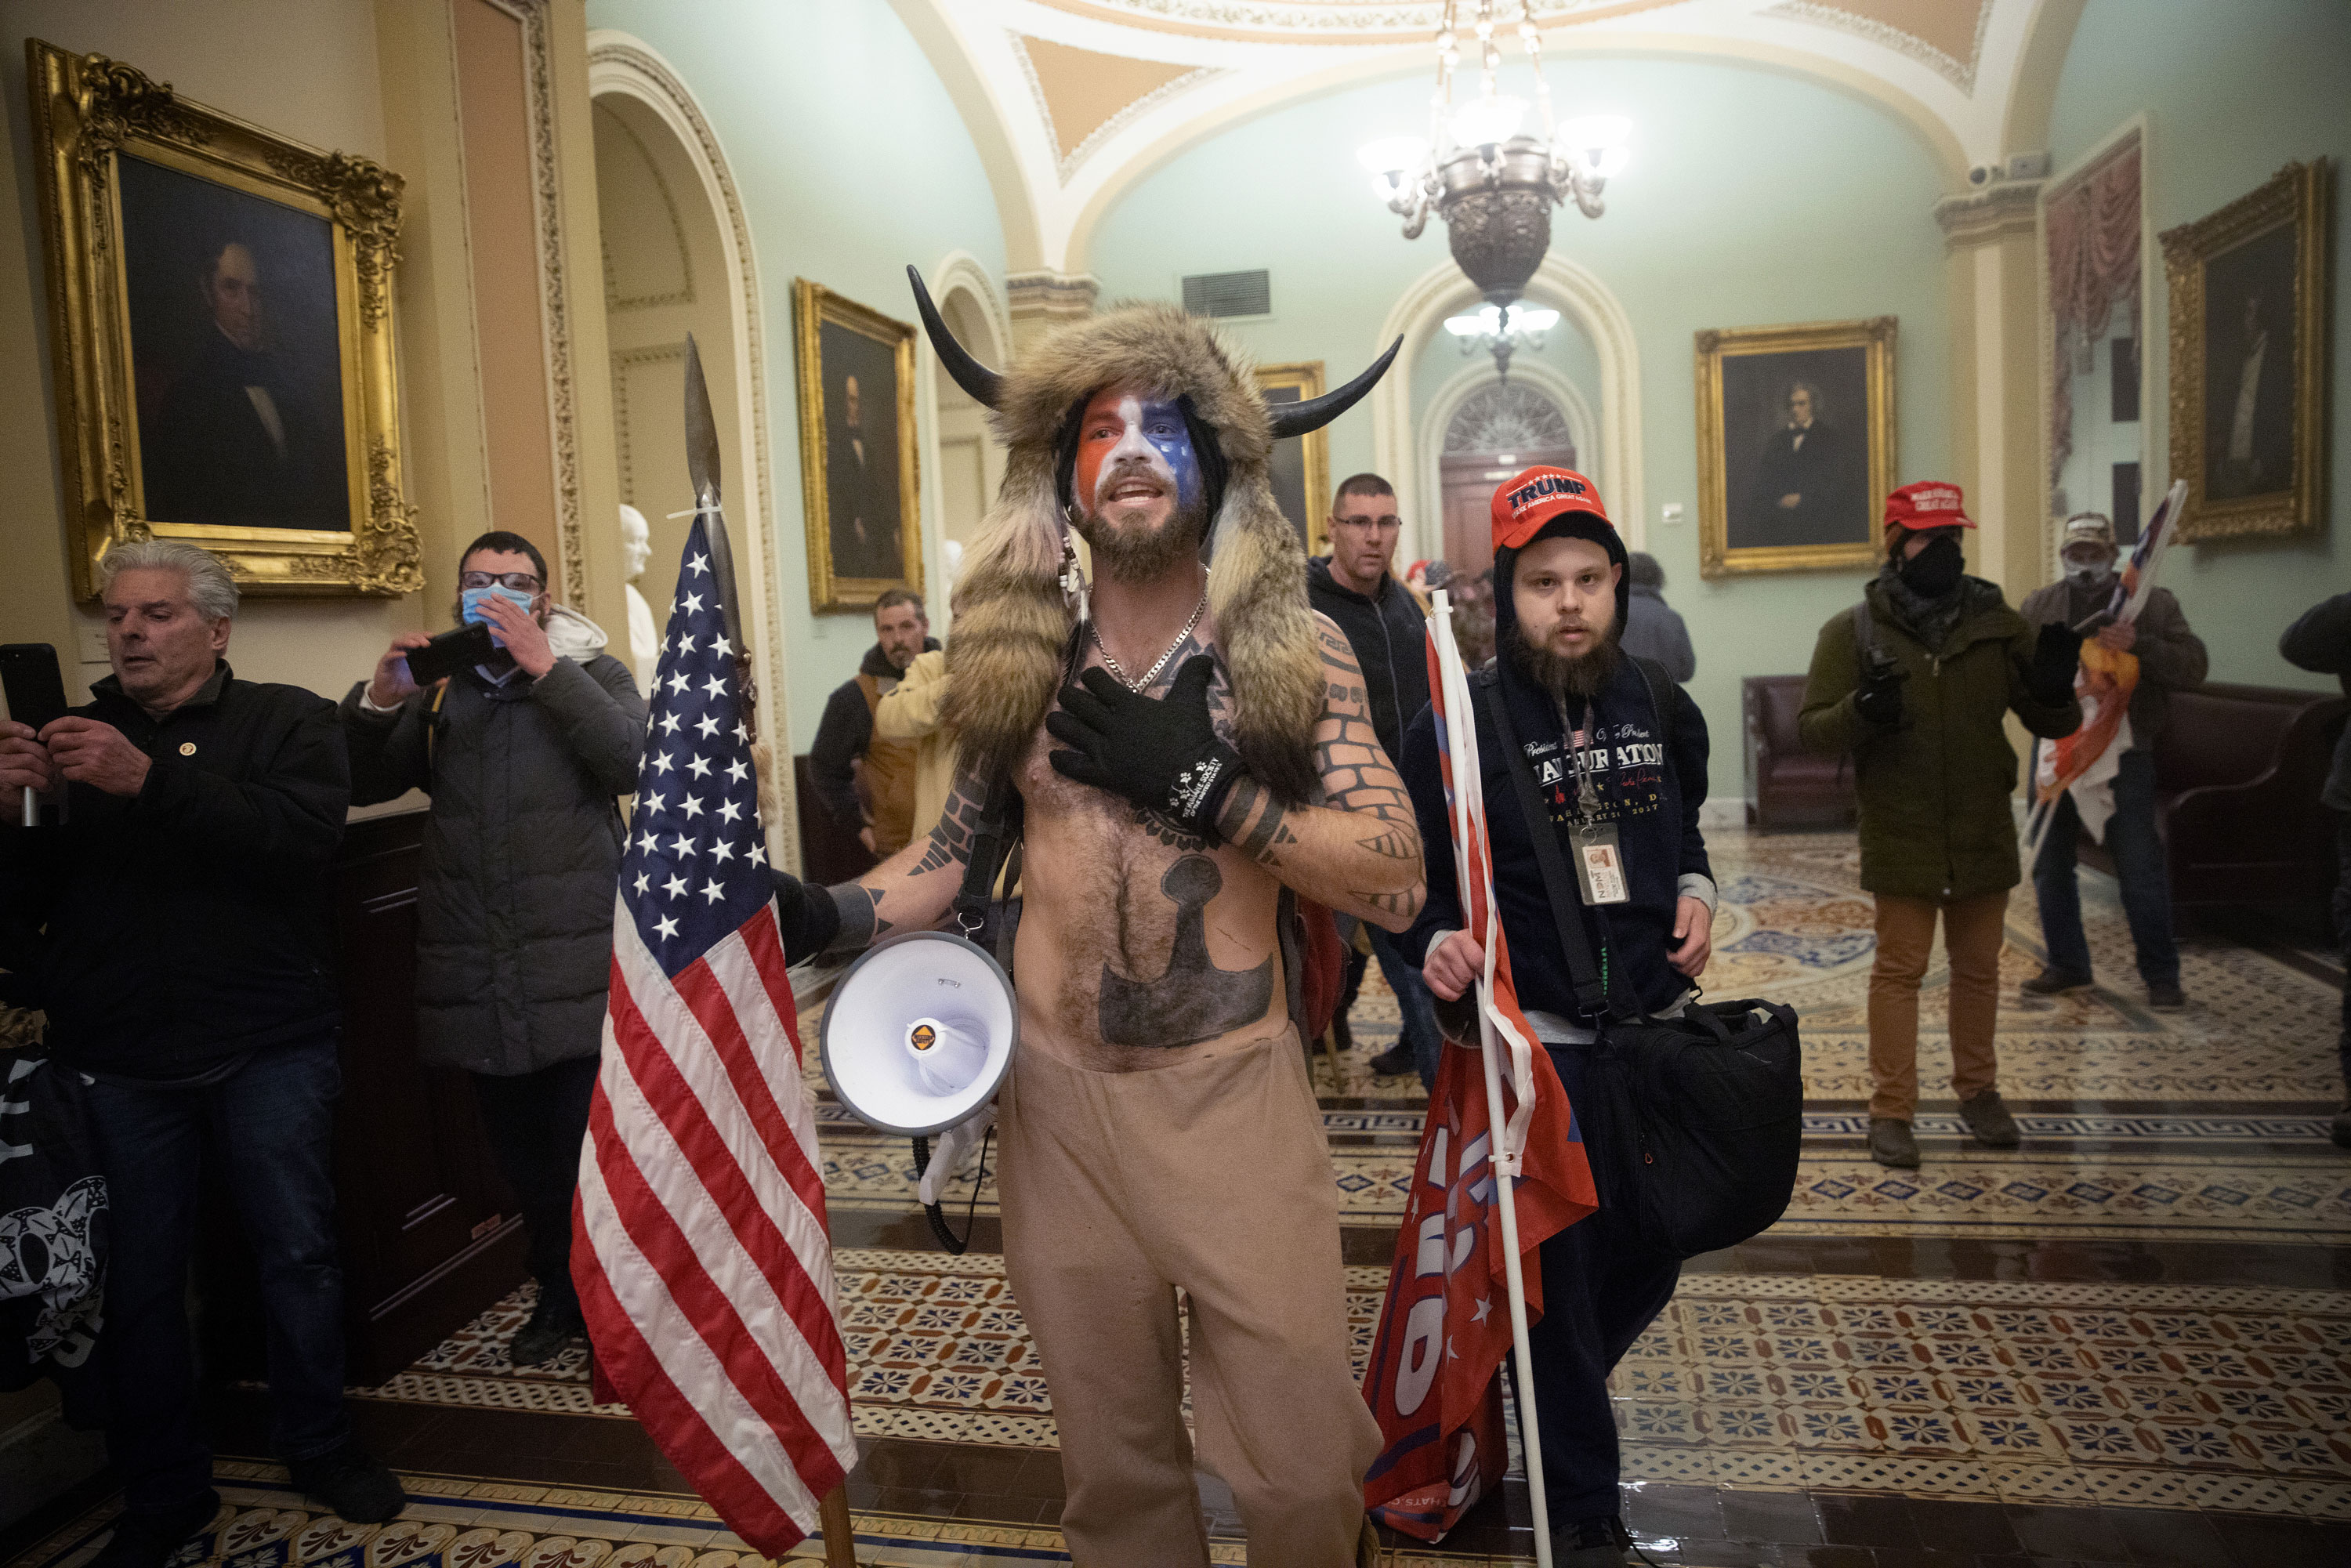 Jacob Anthony Chansley, also known as Jake Angeli, confronts Capitol Police outside the Senate Chamber on January 6.